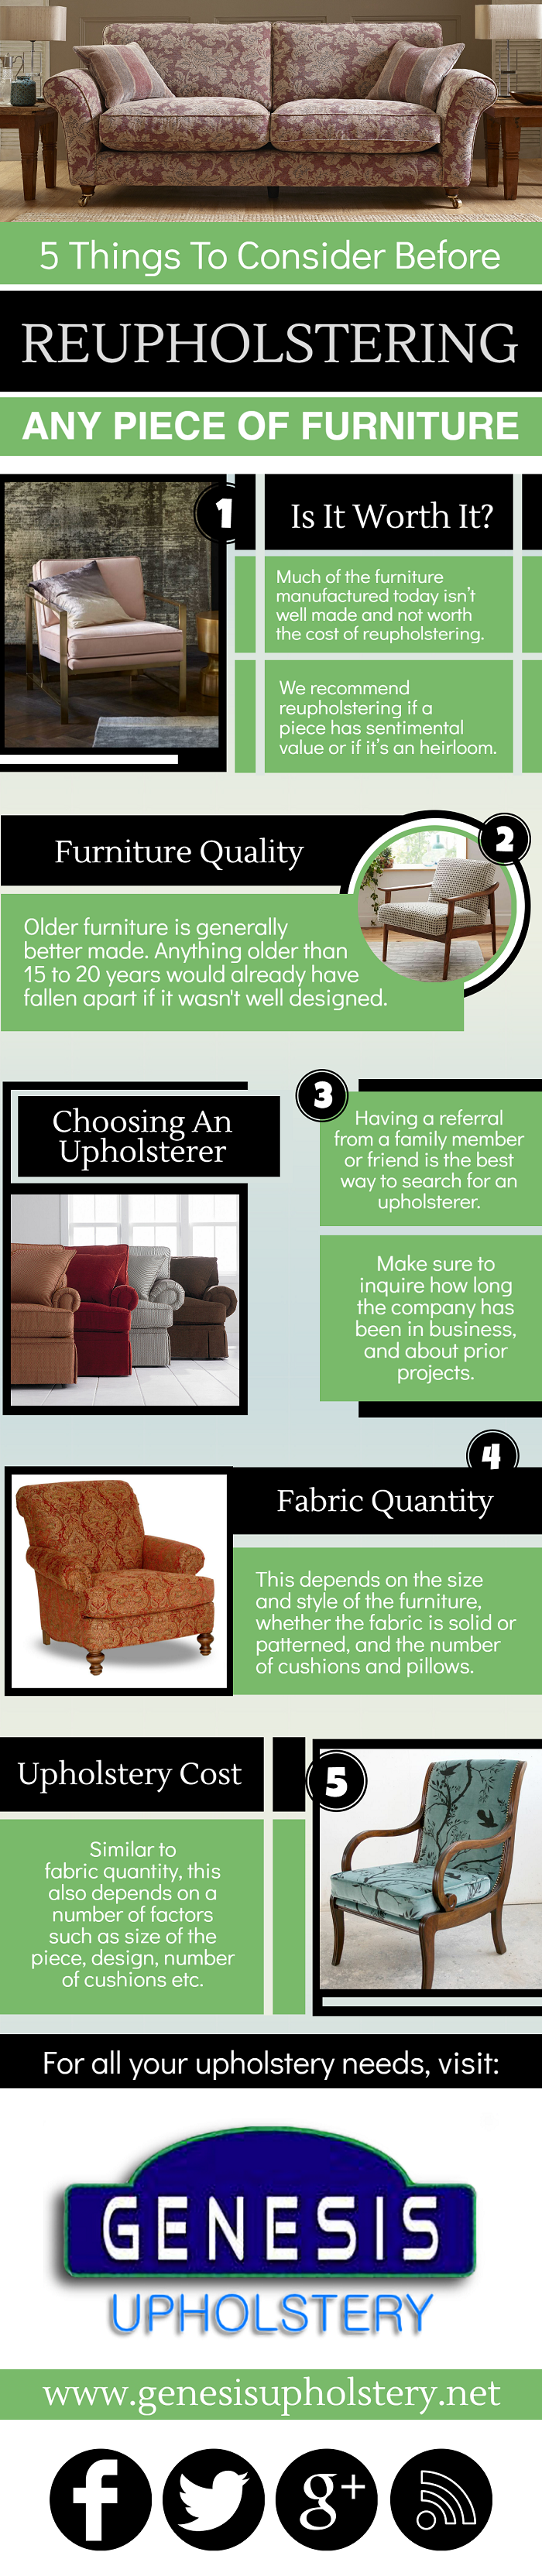 5 Things to Consider Before Reupholstering Any Piece of Furniture